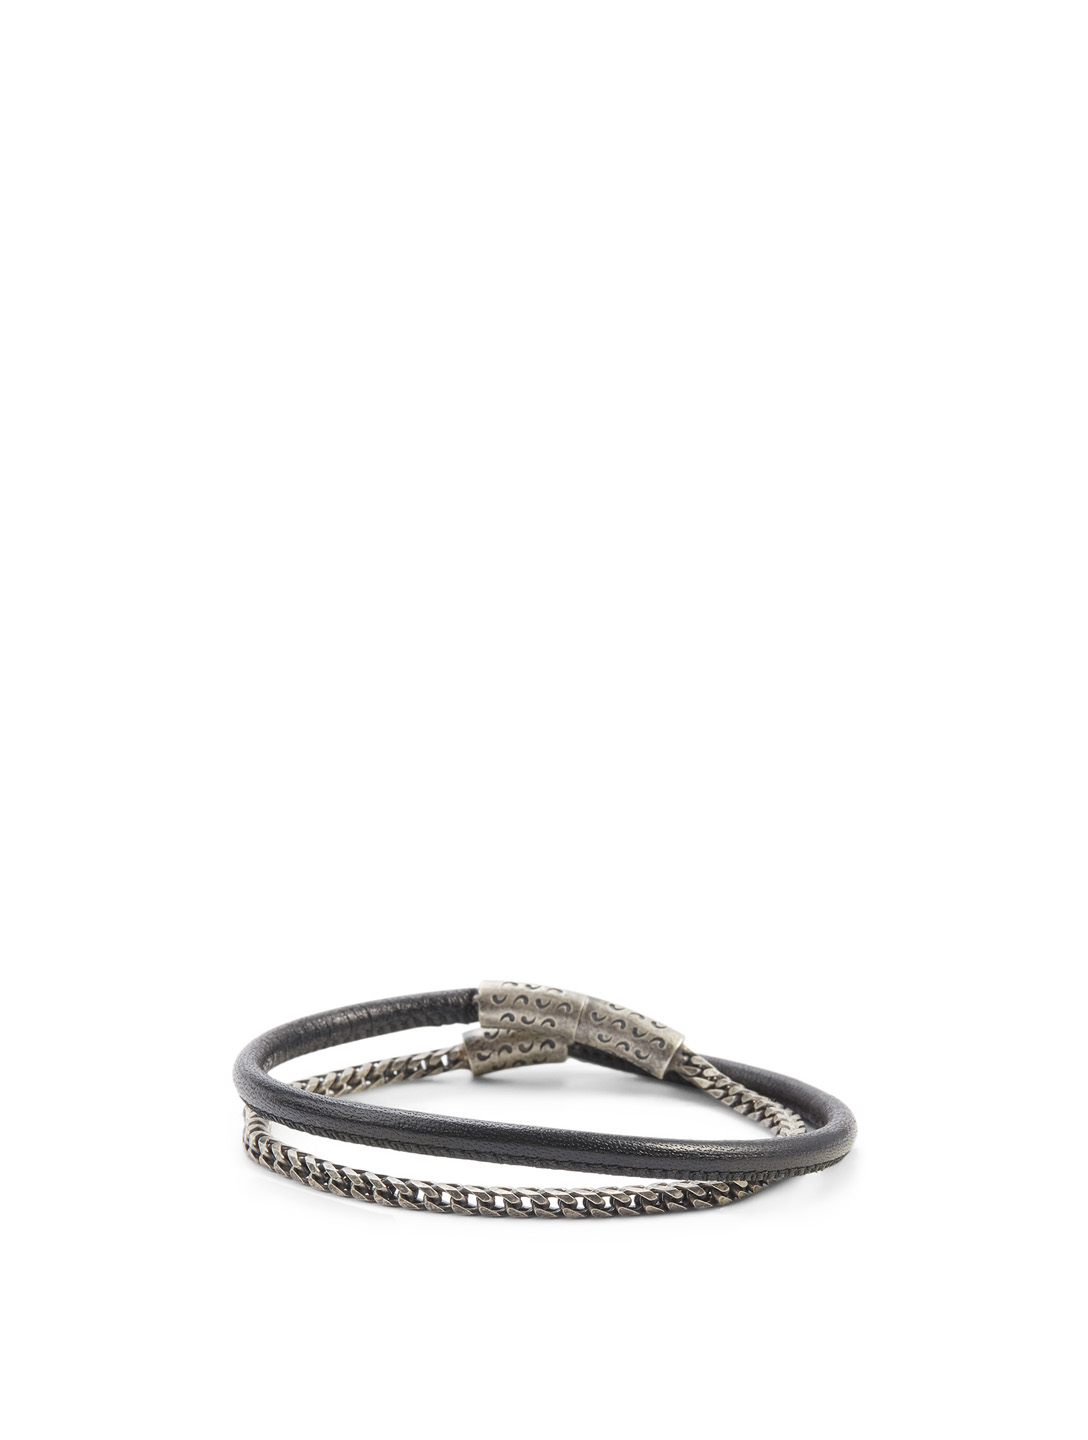 MARCO DAL MASO Lash Double Wrap Silver Chain And Leather Bracelet Men's Black